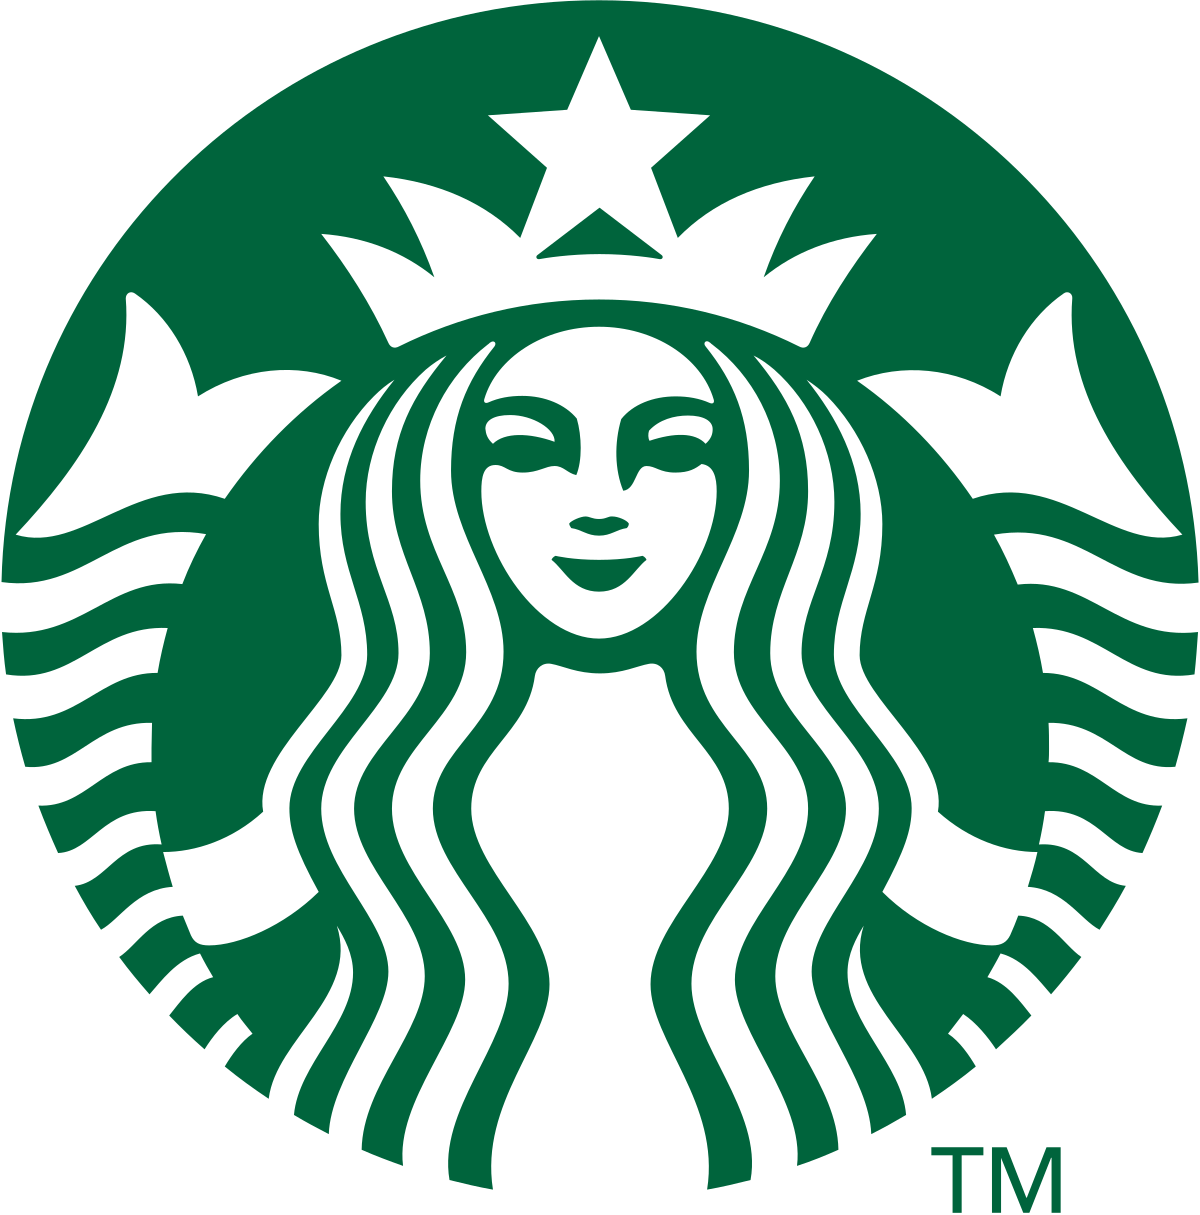 Pin by 莊文化 on FREE (With images) Starbucks logo